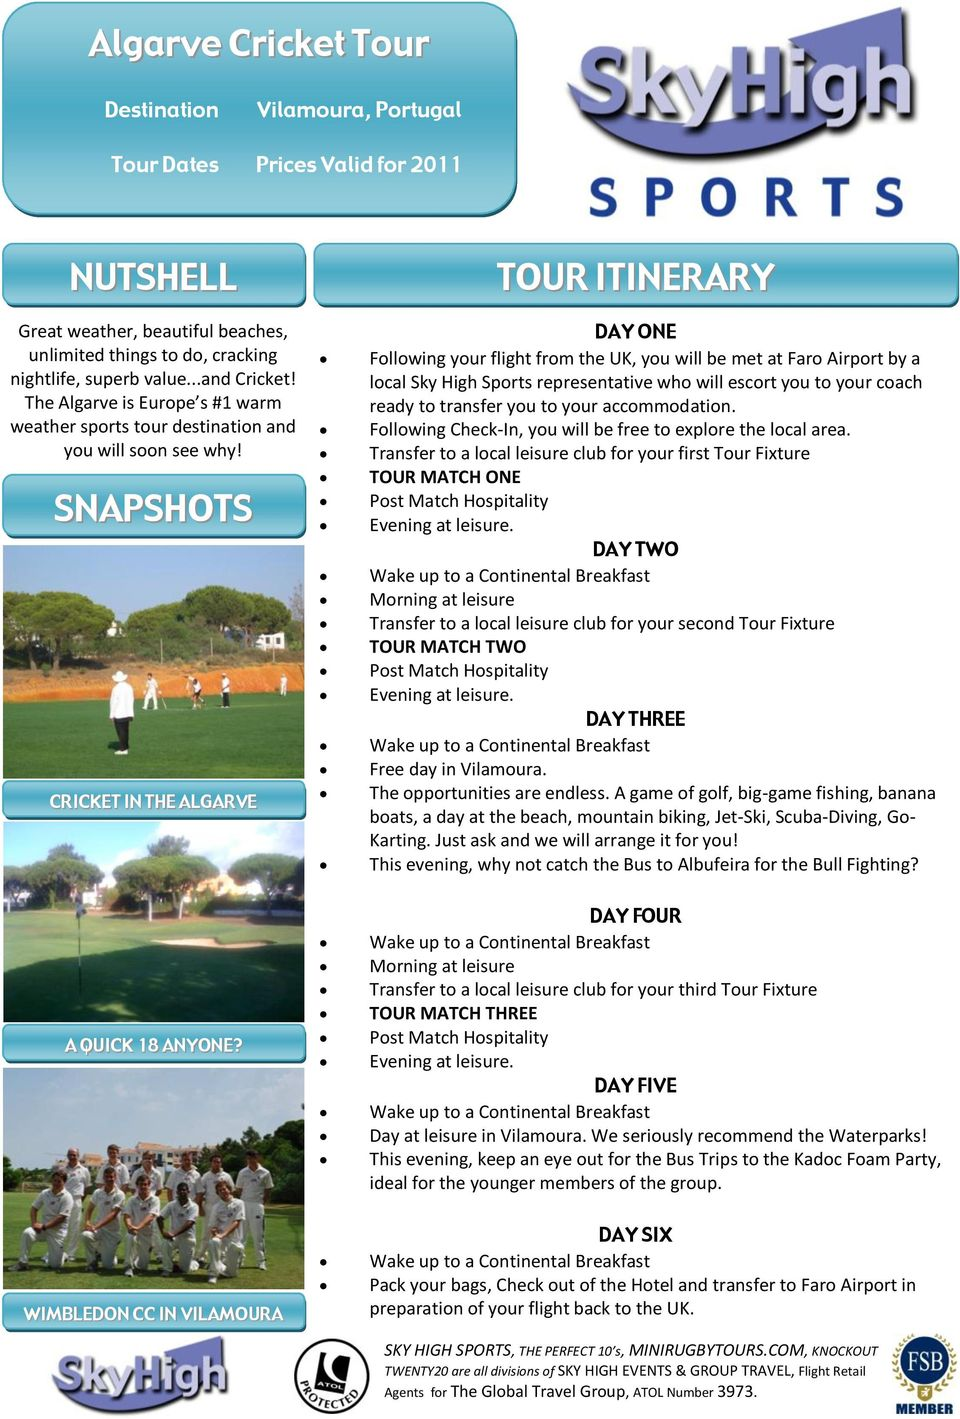 SNAPSHOTS CRICKET IN THE ALGARVE TOUR ITINERARY DAY ONE Following your flight from the UK, you will be met at Faro Airport by a local Sky High Sports representative who will escort you to your coach